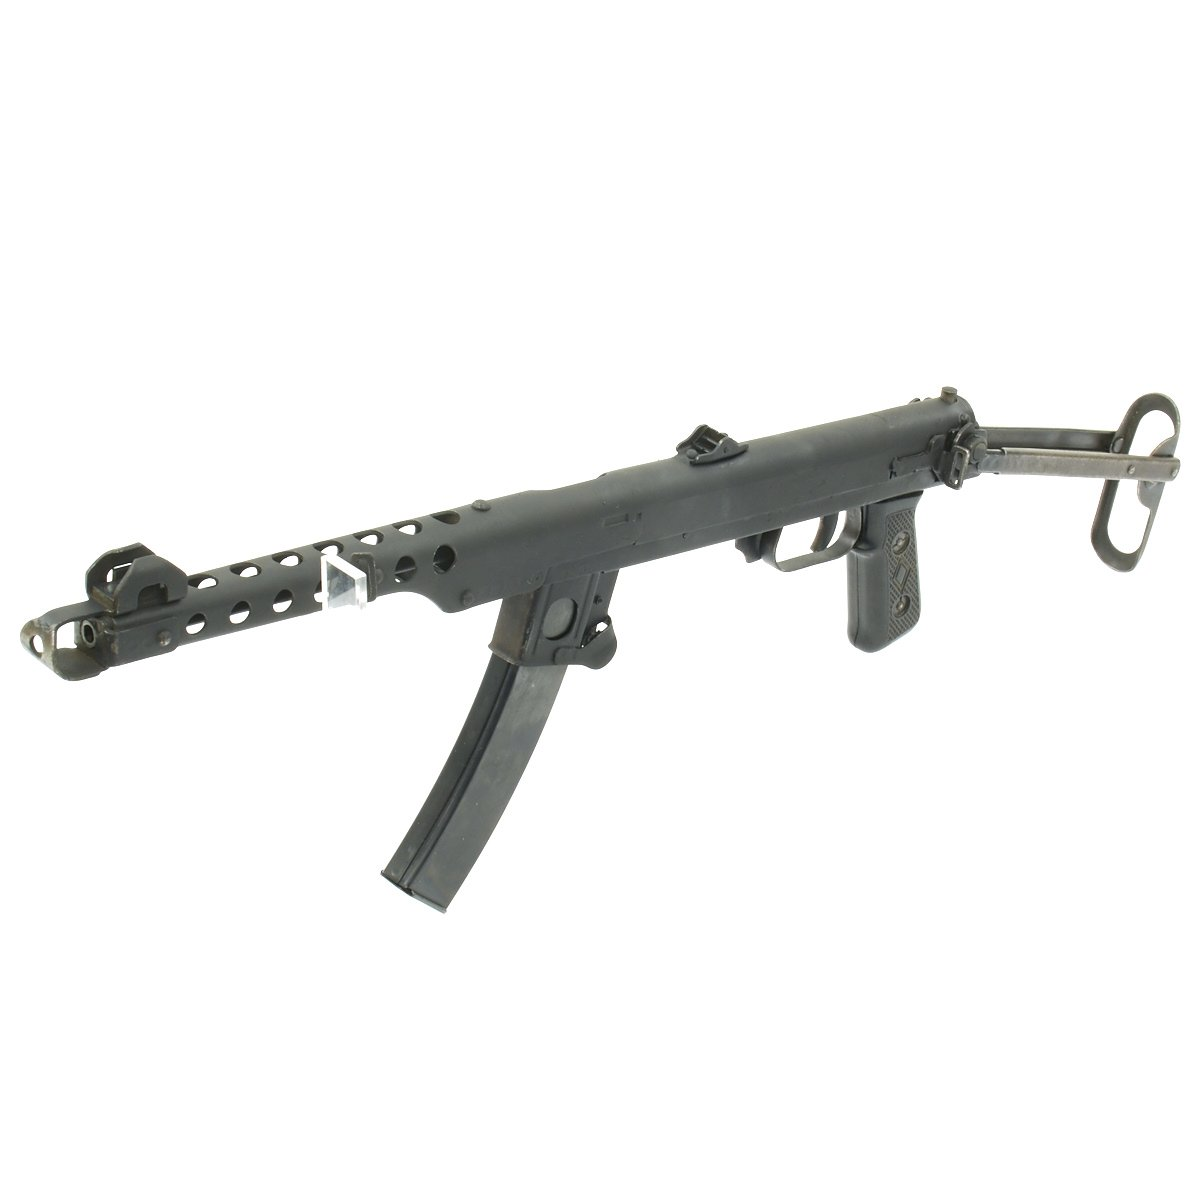 Original WWII Soviet Russian PPs-43 Display Submachine Gun